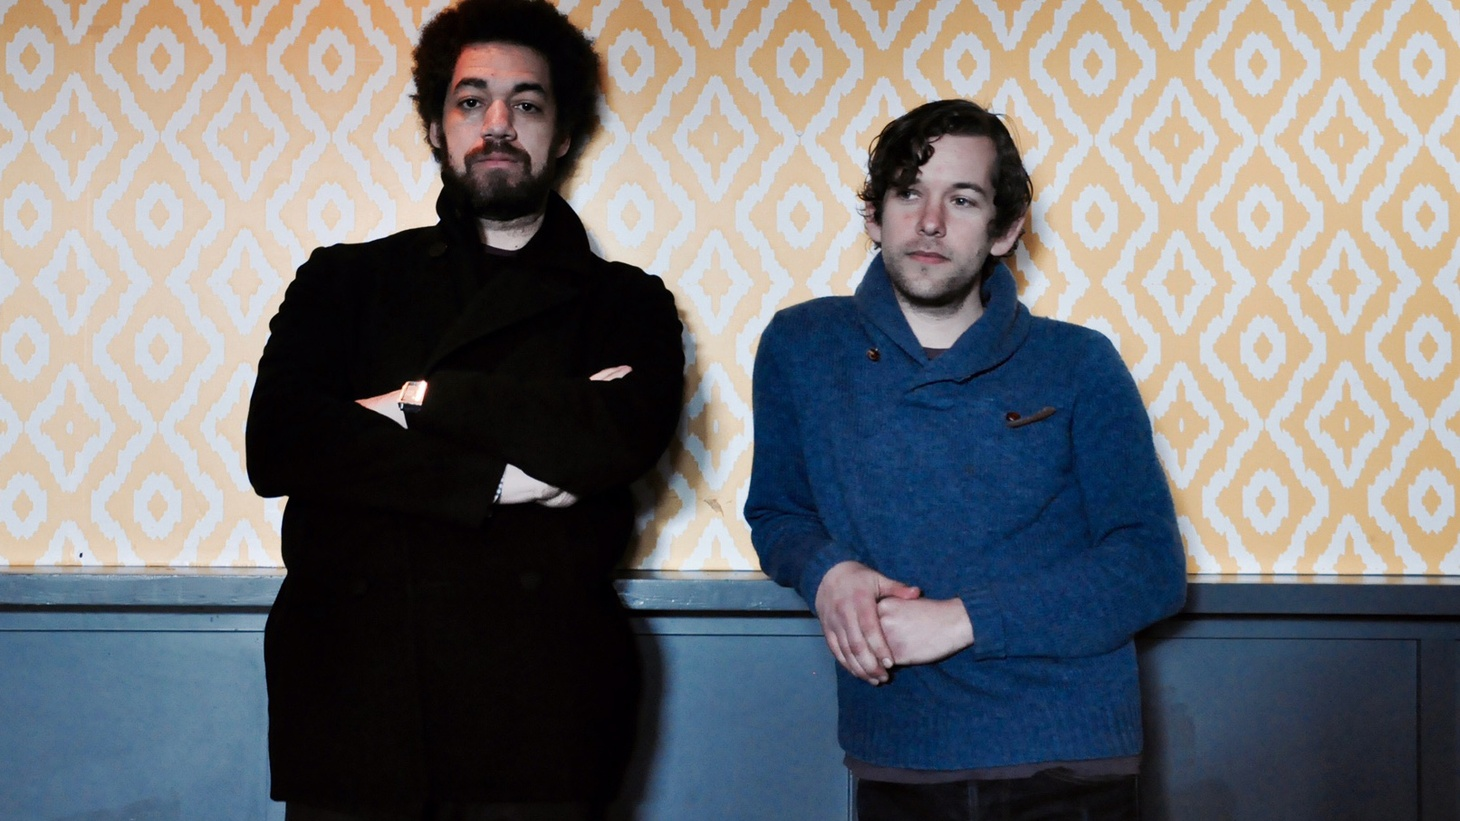 Jason Bentley interviews Danger Mouse and Sam Cohen at SXSW 2017.